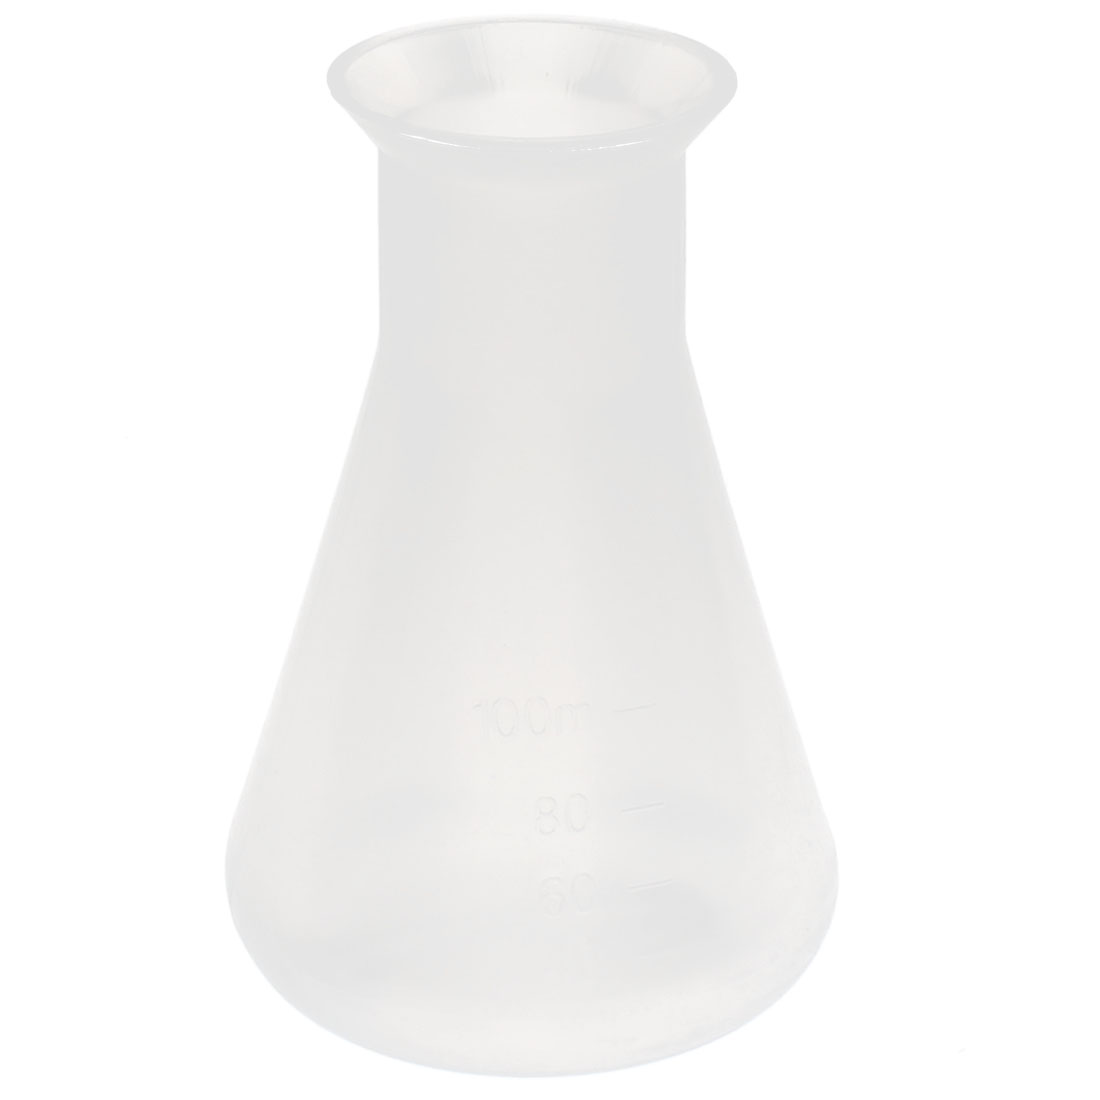 Lab Laboratory Experiment Graduated Clear Plastic Chemical Conical Flask Storage Bottle 100ml